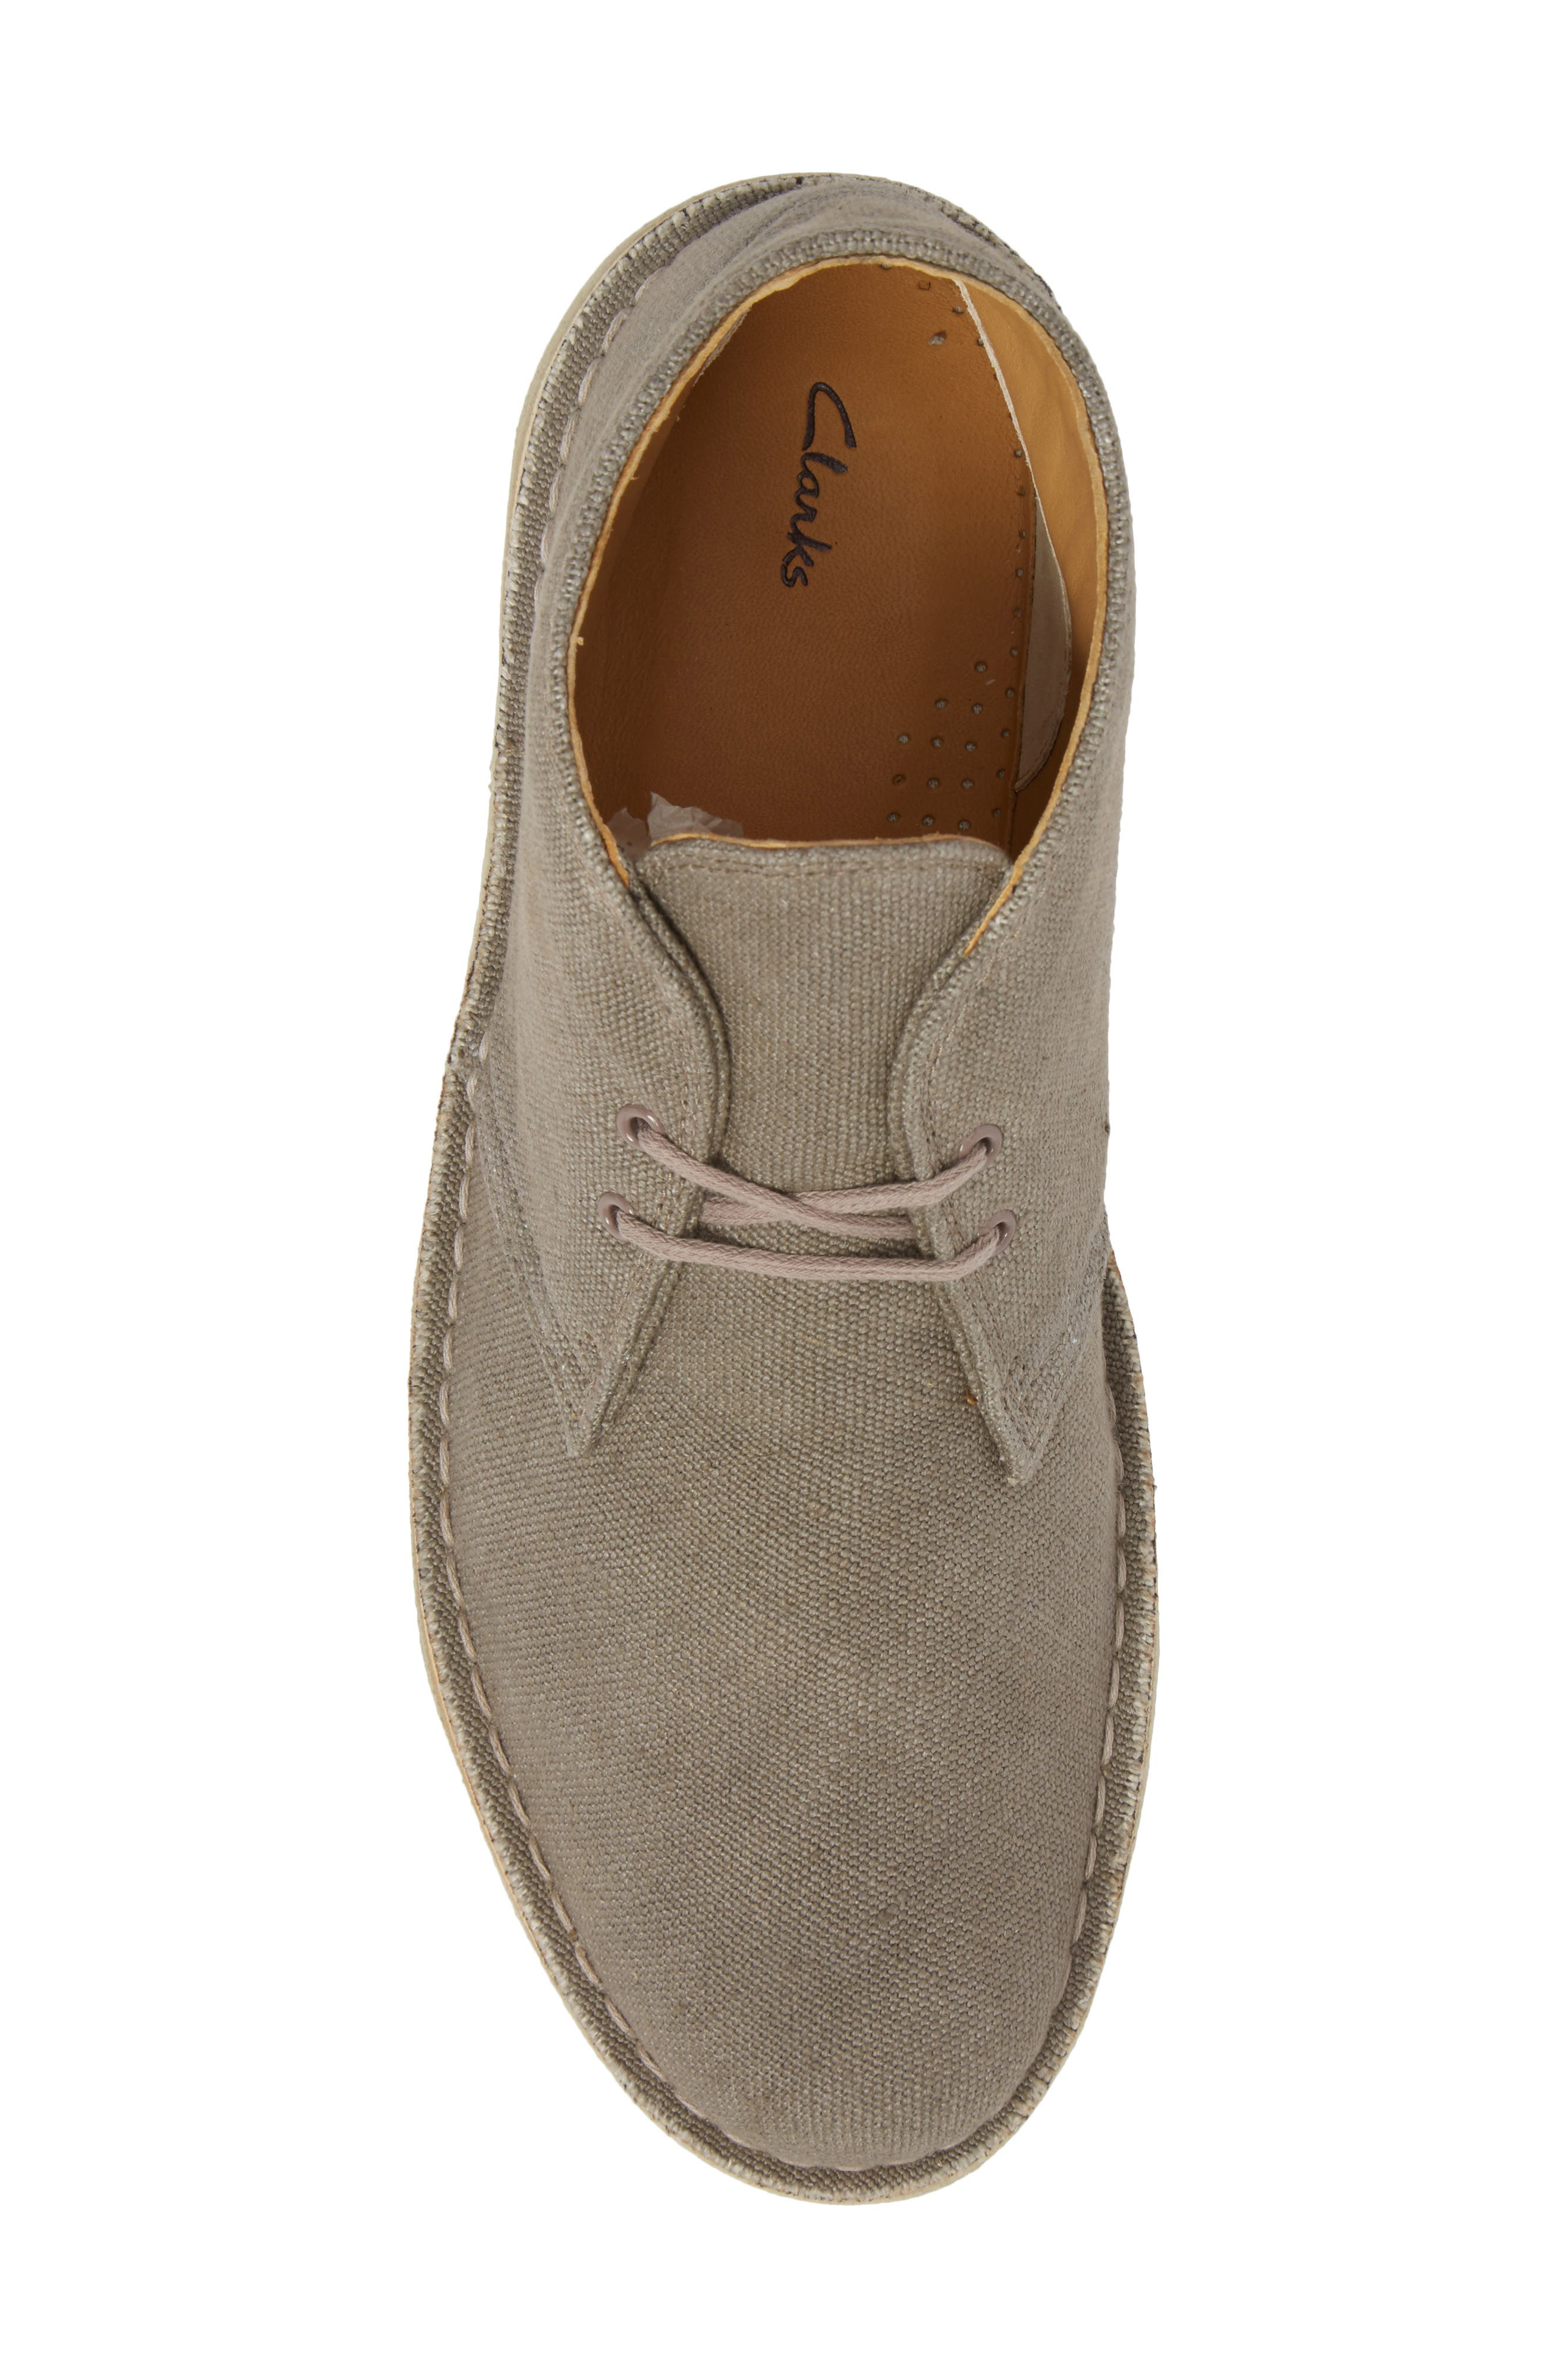 Clarks<sup>®</sup> Desert Chukka Boot,                             Alternate thumbnail 5, color,                             Taupe Canvas